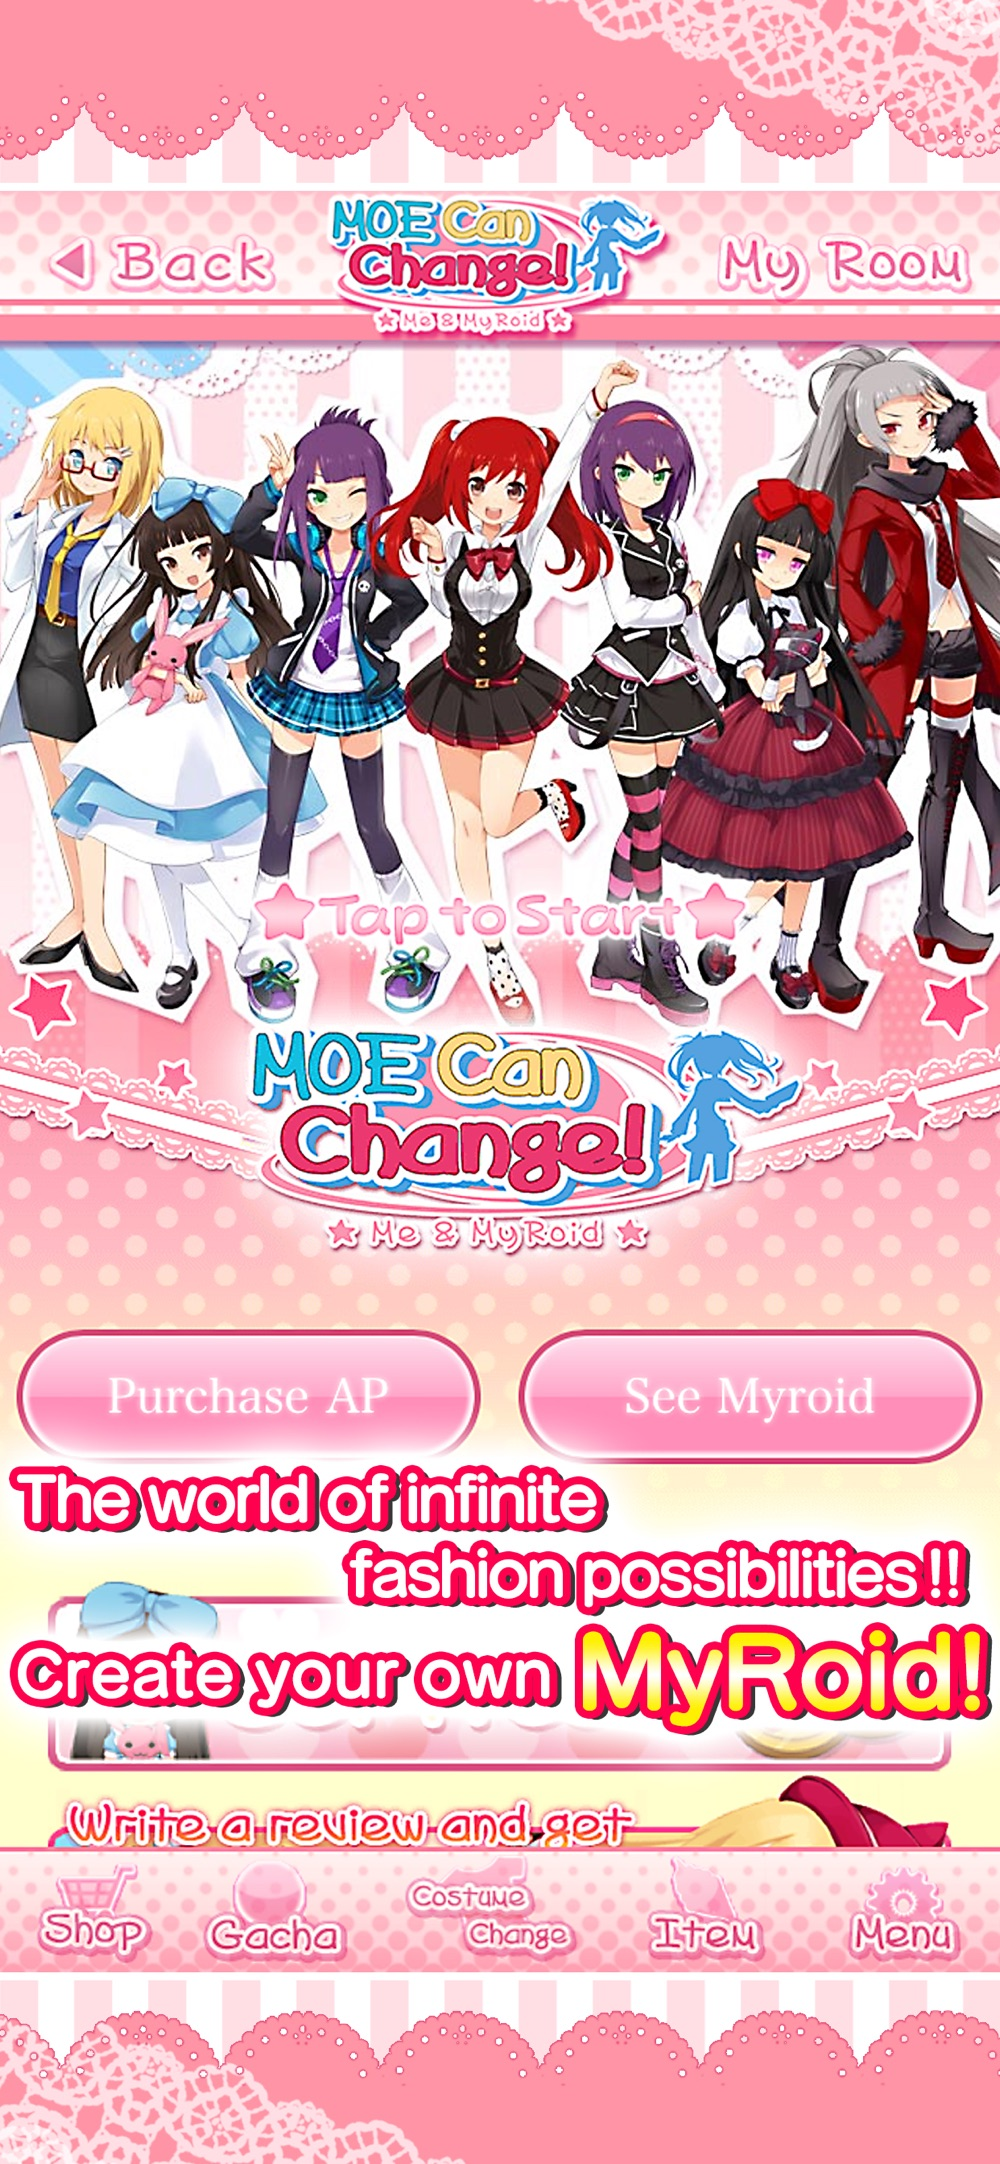 MOE Can Change! -Me & MyRoid- Cheat Codes